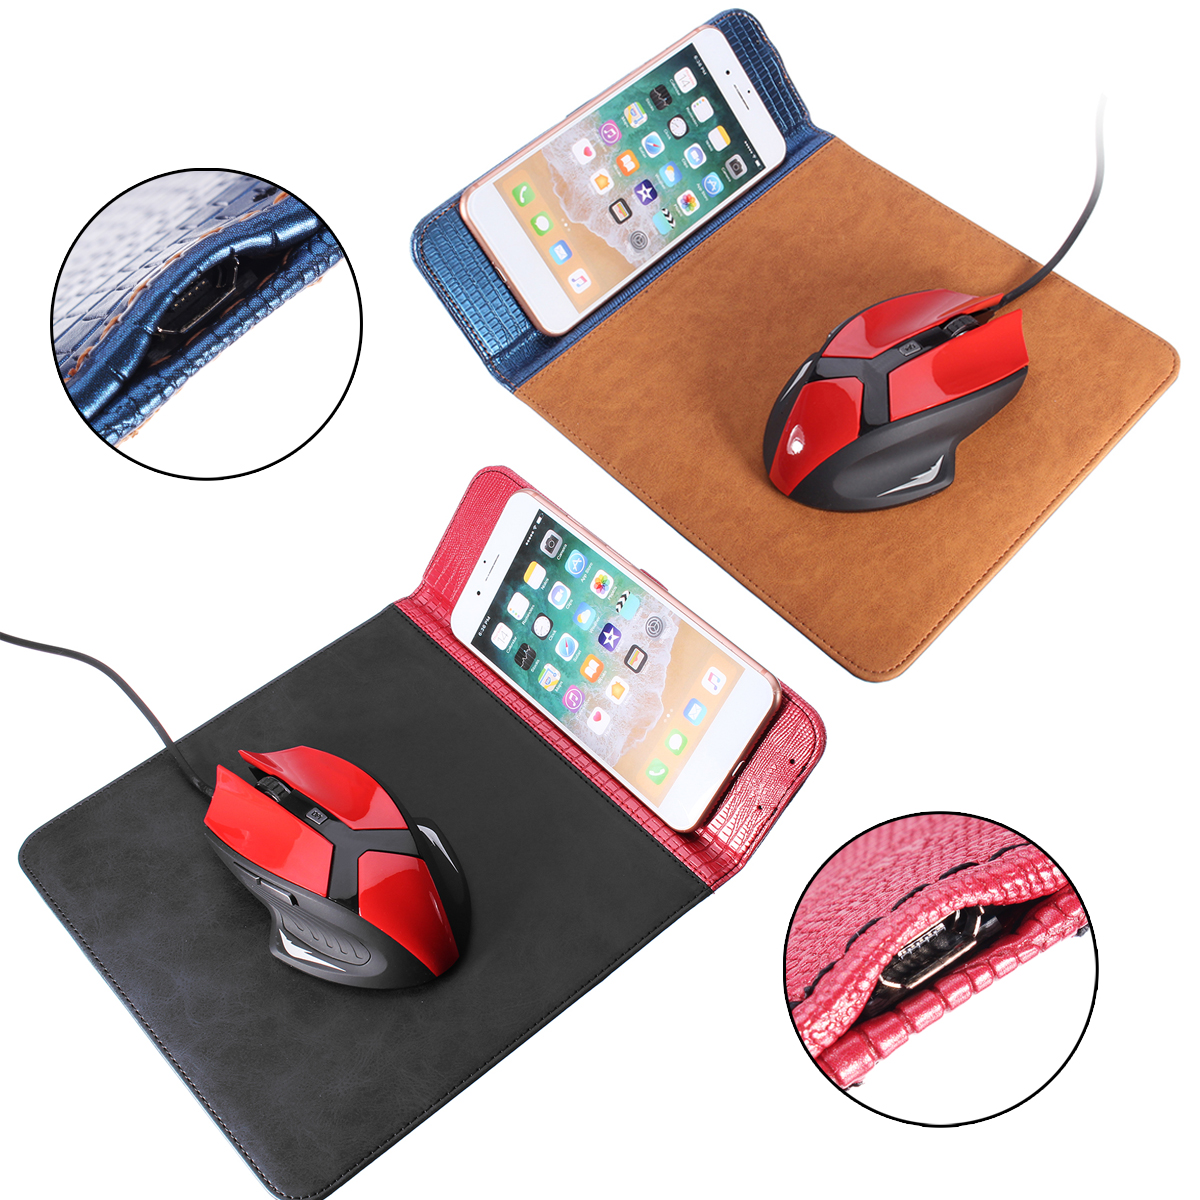 Qi Wireless Charger Charging Pad Mouse Pad Mat Multifunctional Non-Slip Qi Wireless Charger Pad for  iPhoneX/8/8Plus SamsungS8/Note8 Wireless Charging Phone